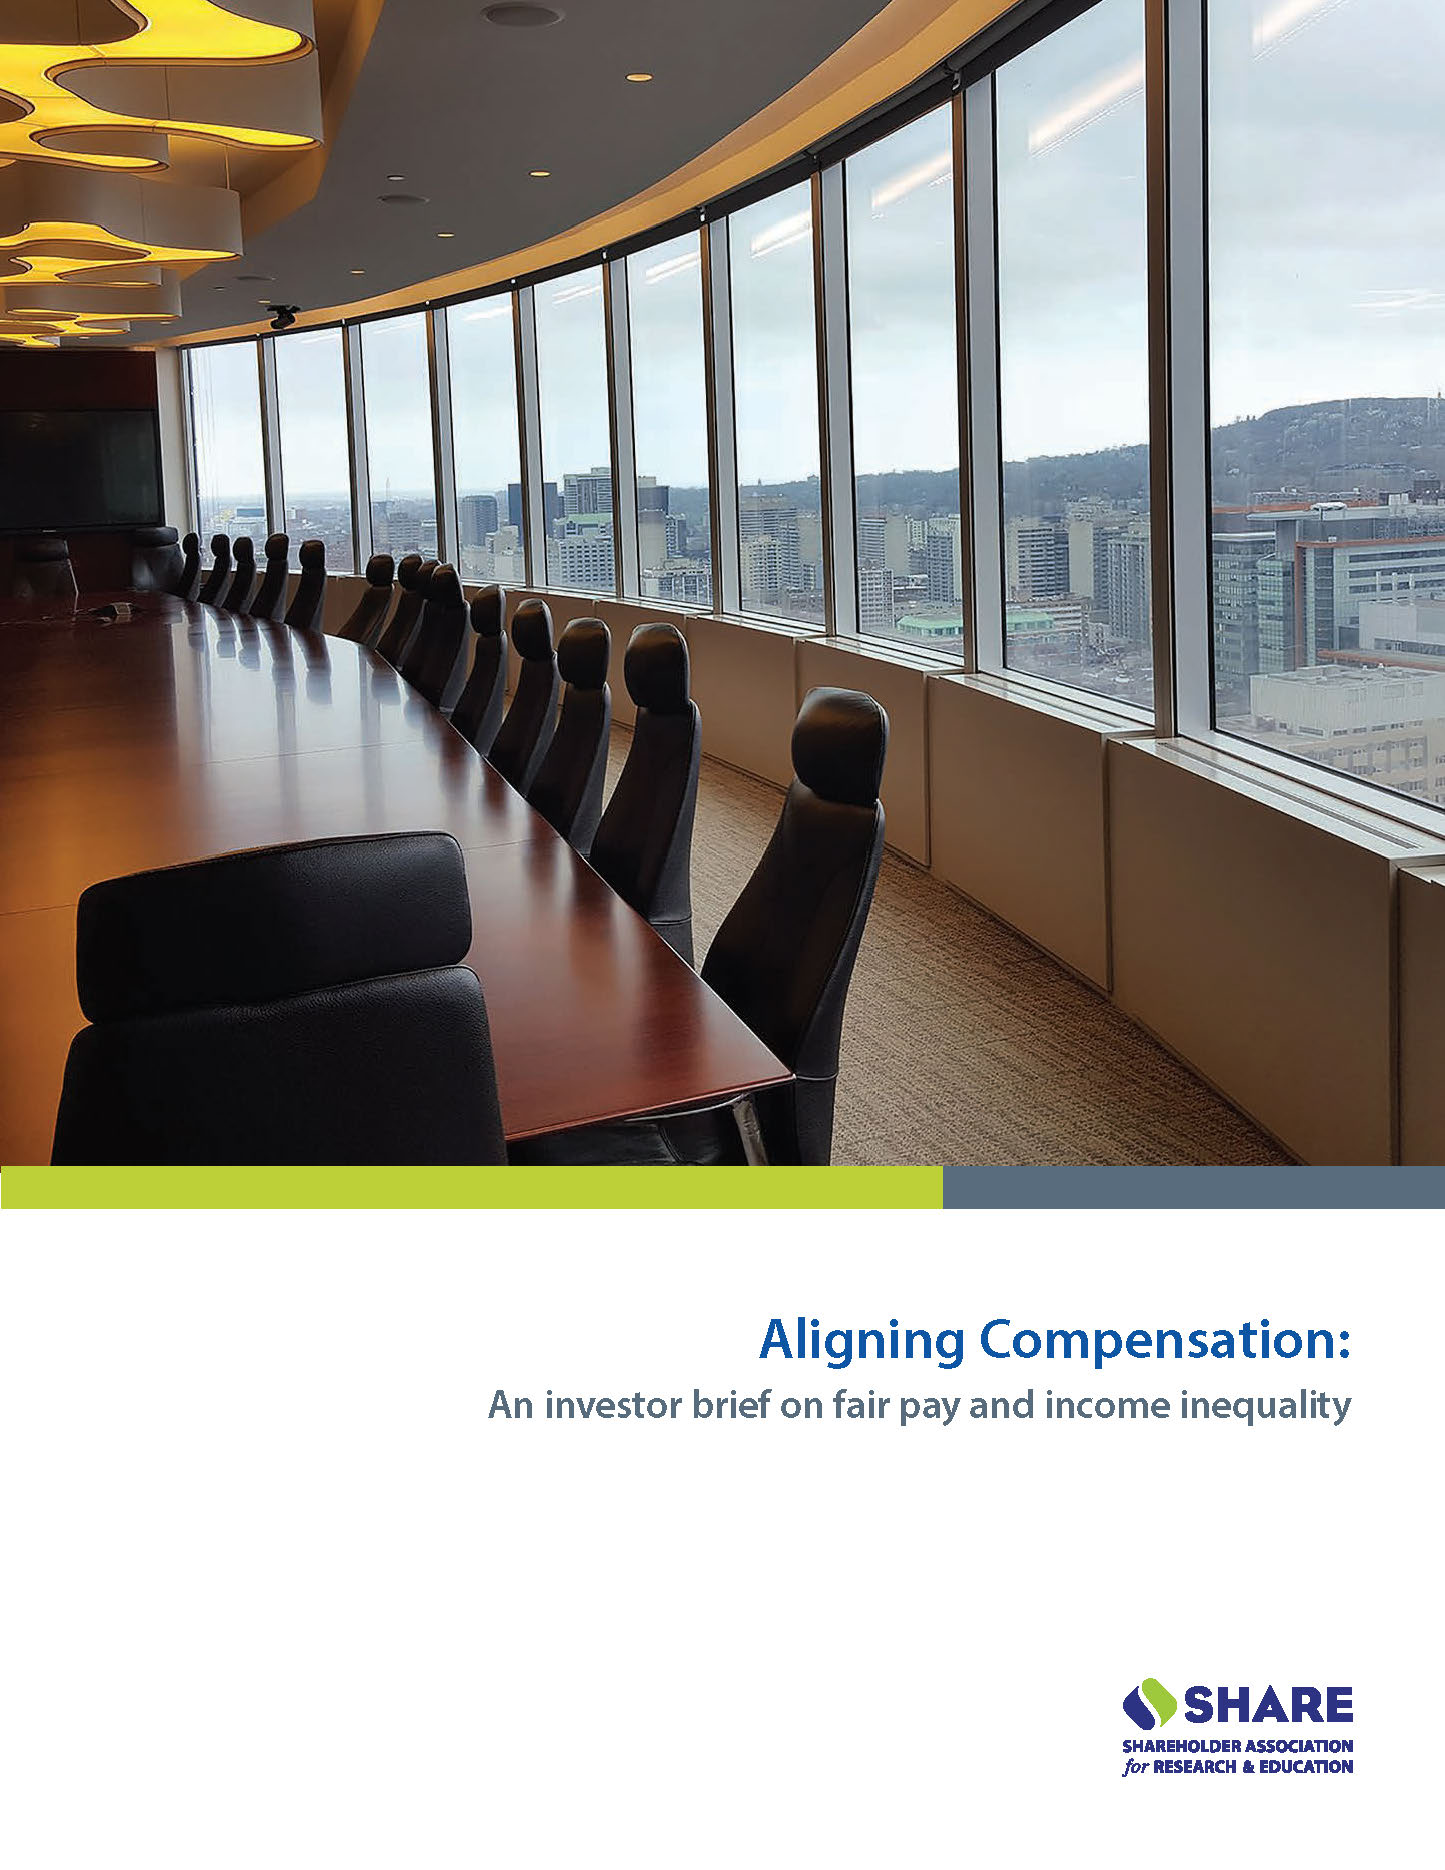 Pages from AligningCompensation-02-2019-1